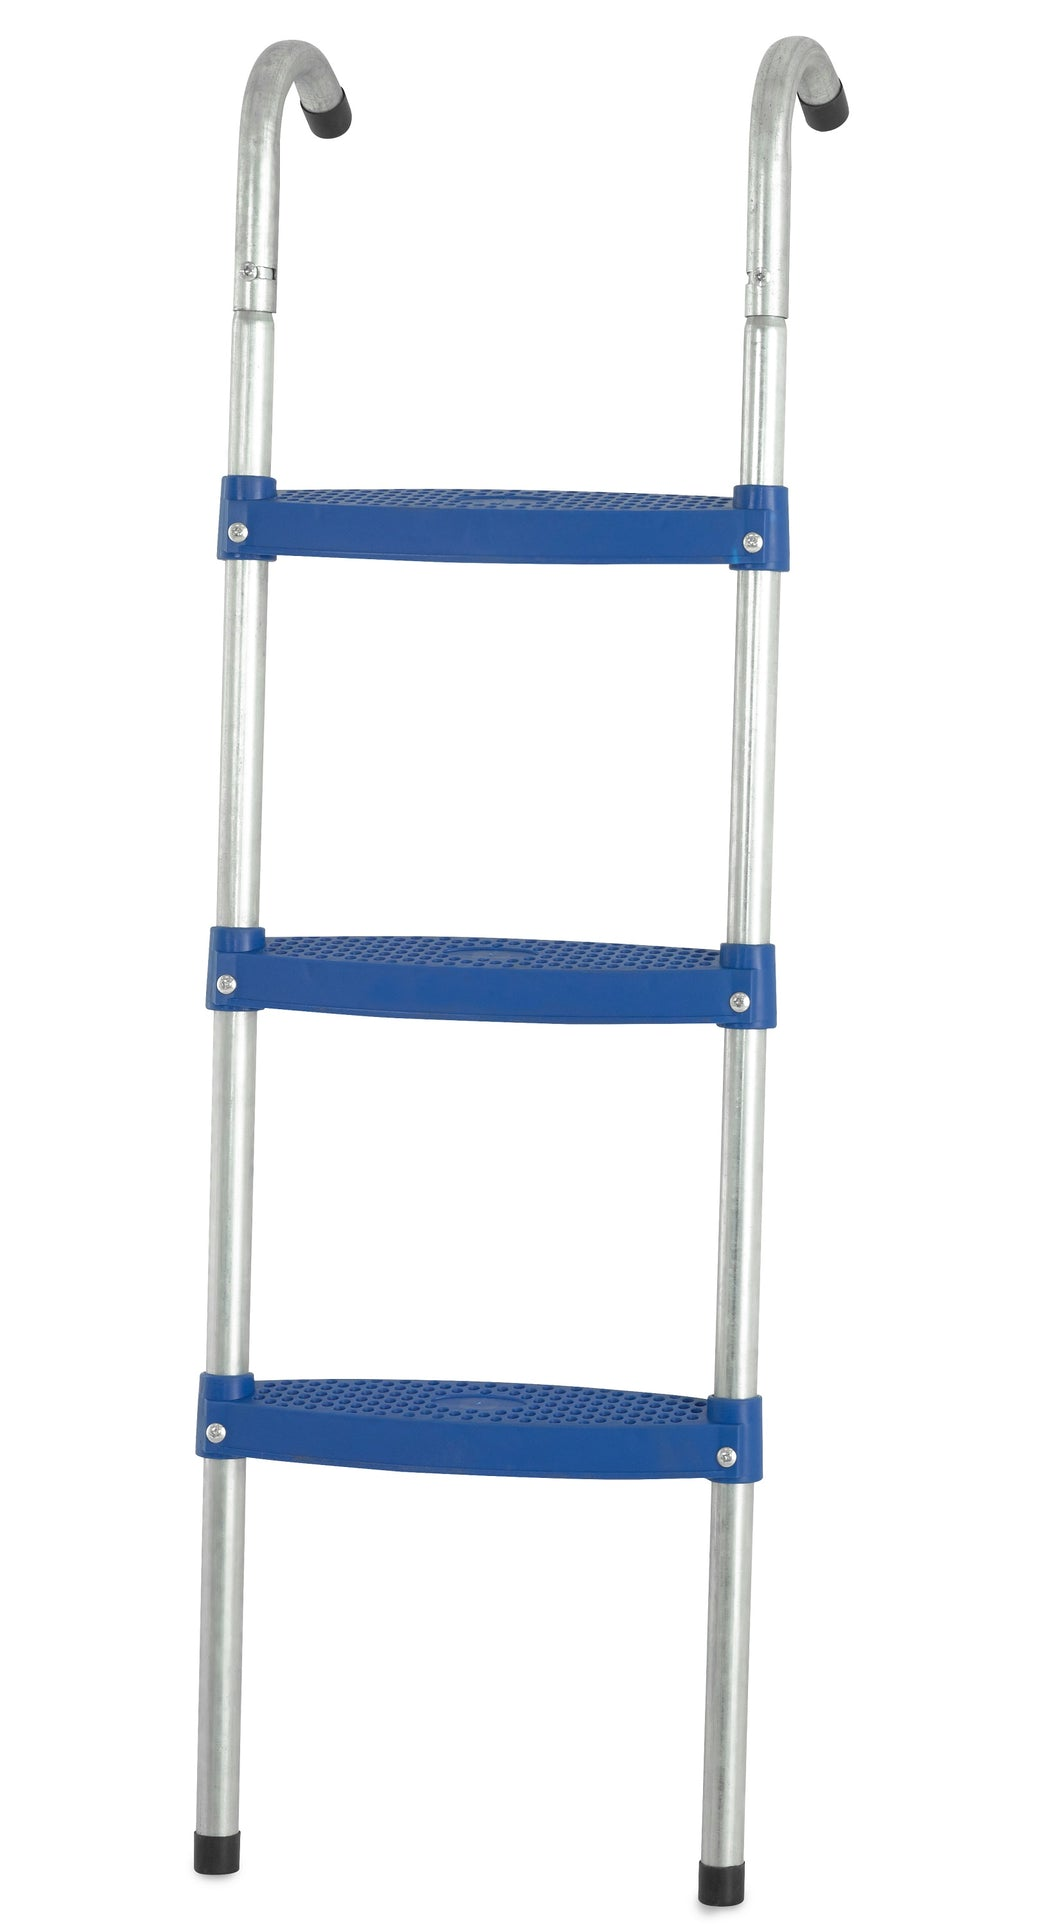 Upper Bounce  3-Step Trampoline Ladder, 42 inch, with 3 inch Wide Flat Step